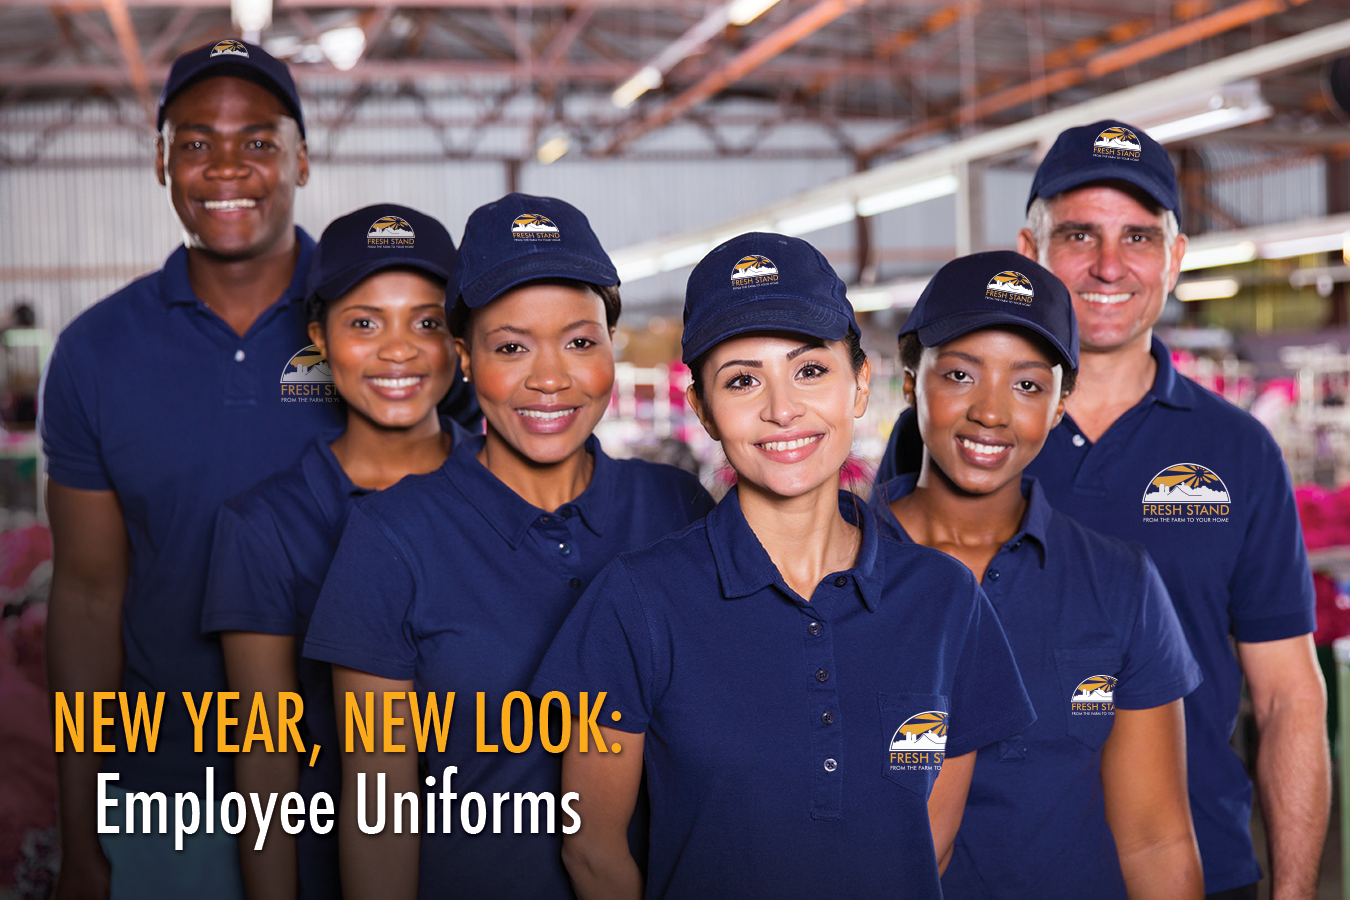 a8d194647 Benefits of New Uniforms for Your Employees